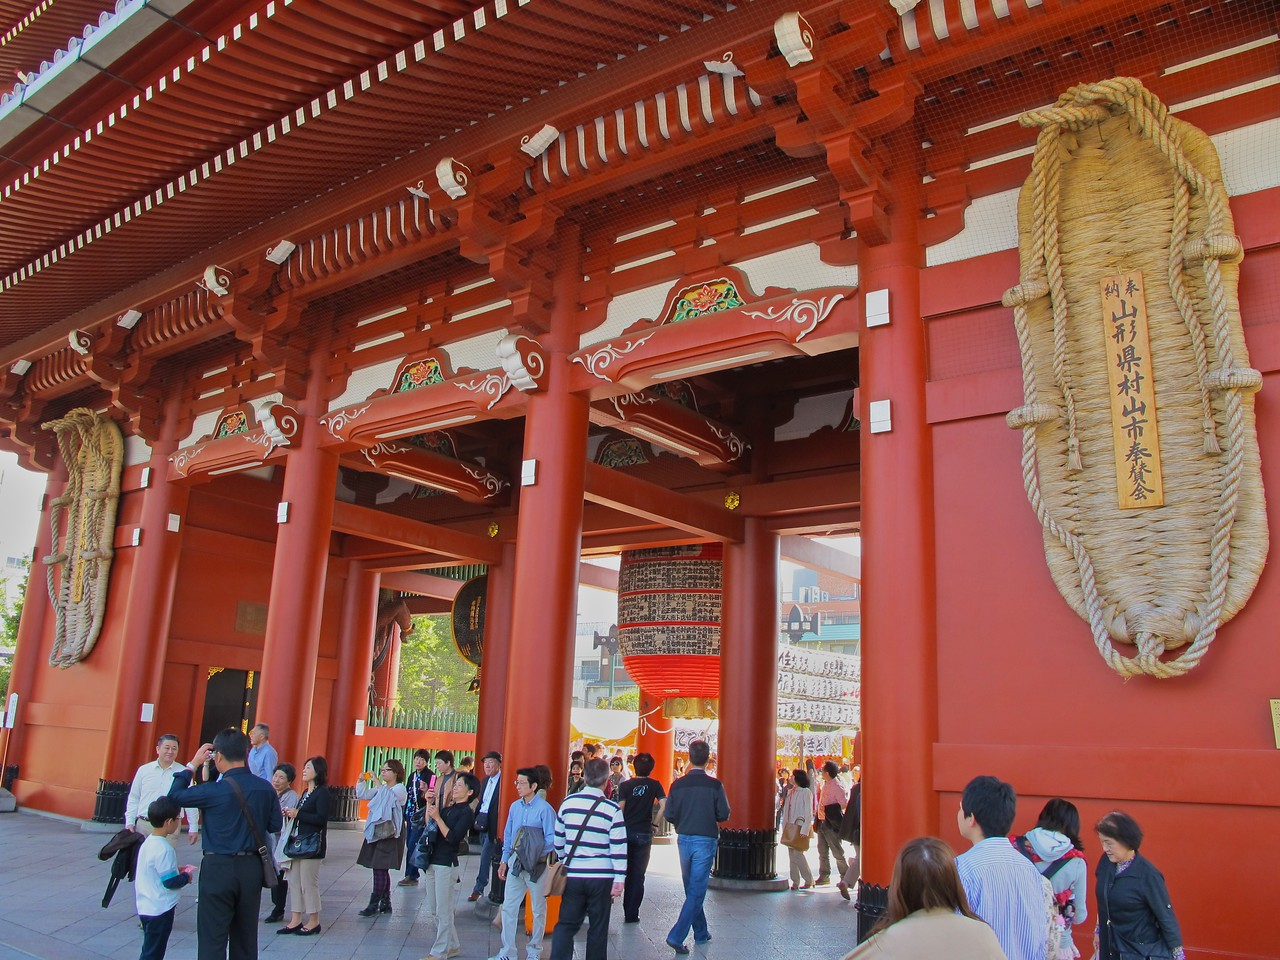 At the other end of the shopping street is the Hozomon Gate right before you get to the temple.